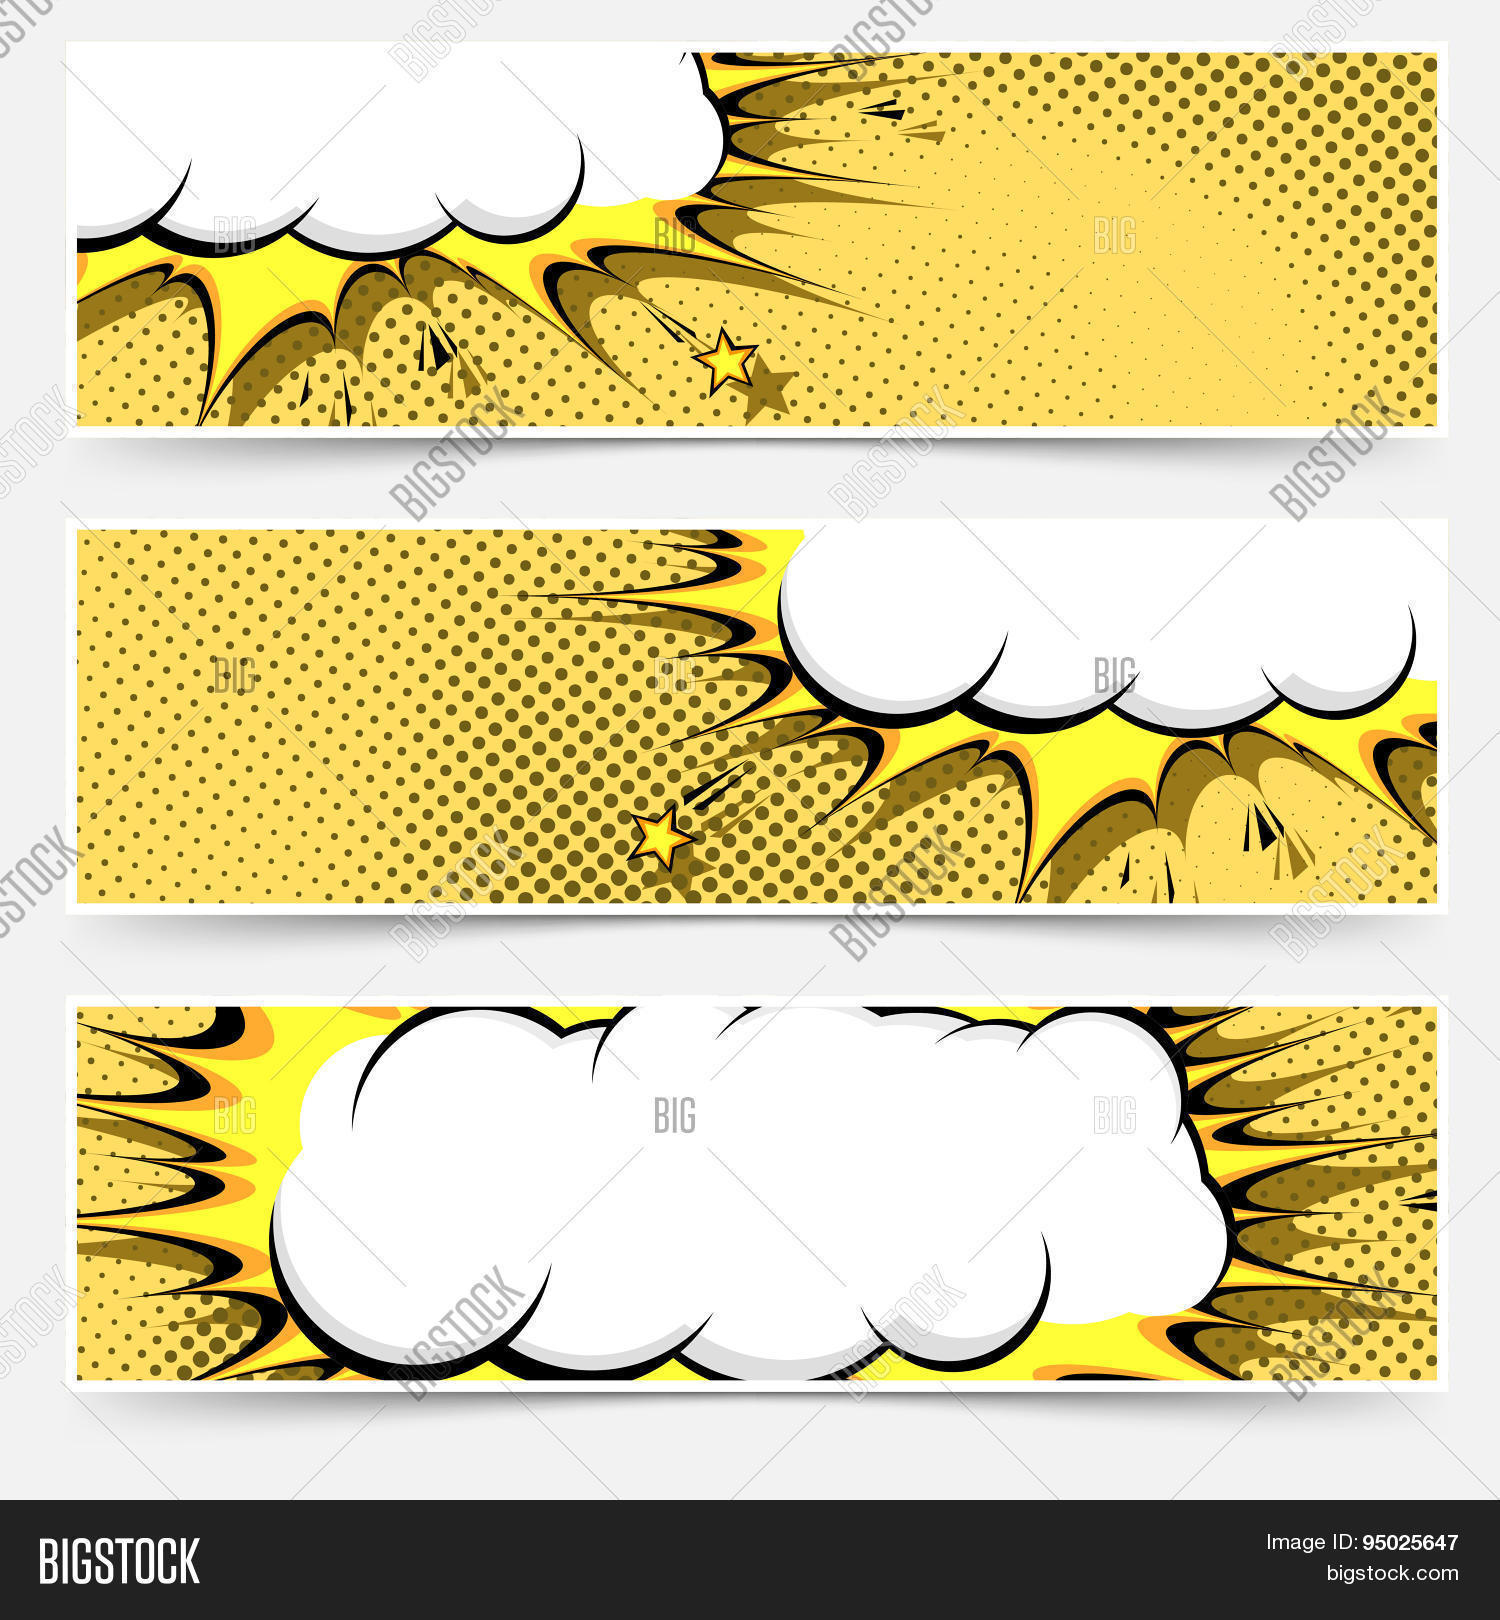 Free Comic Book Day Flyer: Pop-art Comic Book Vector & Photo (Free Trial)